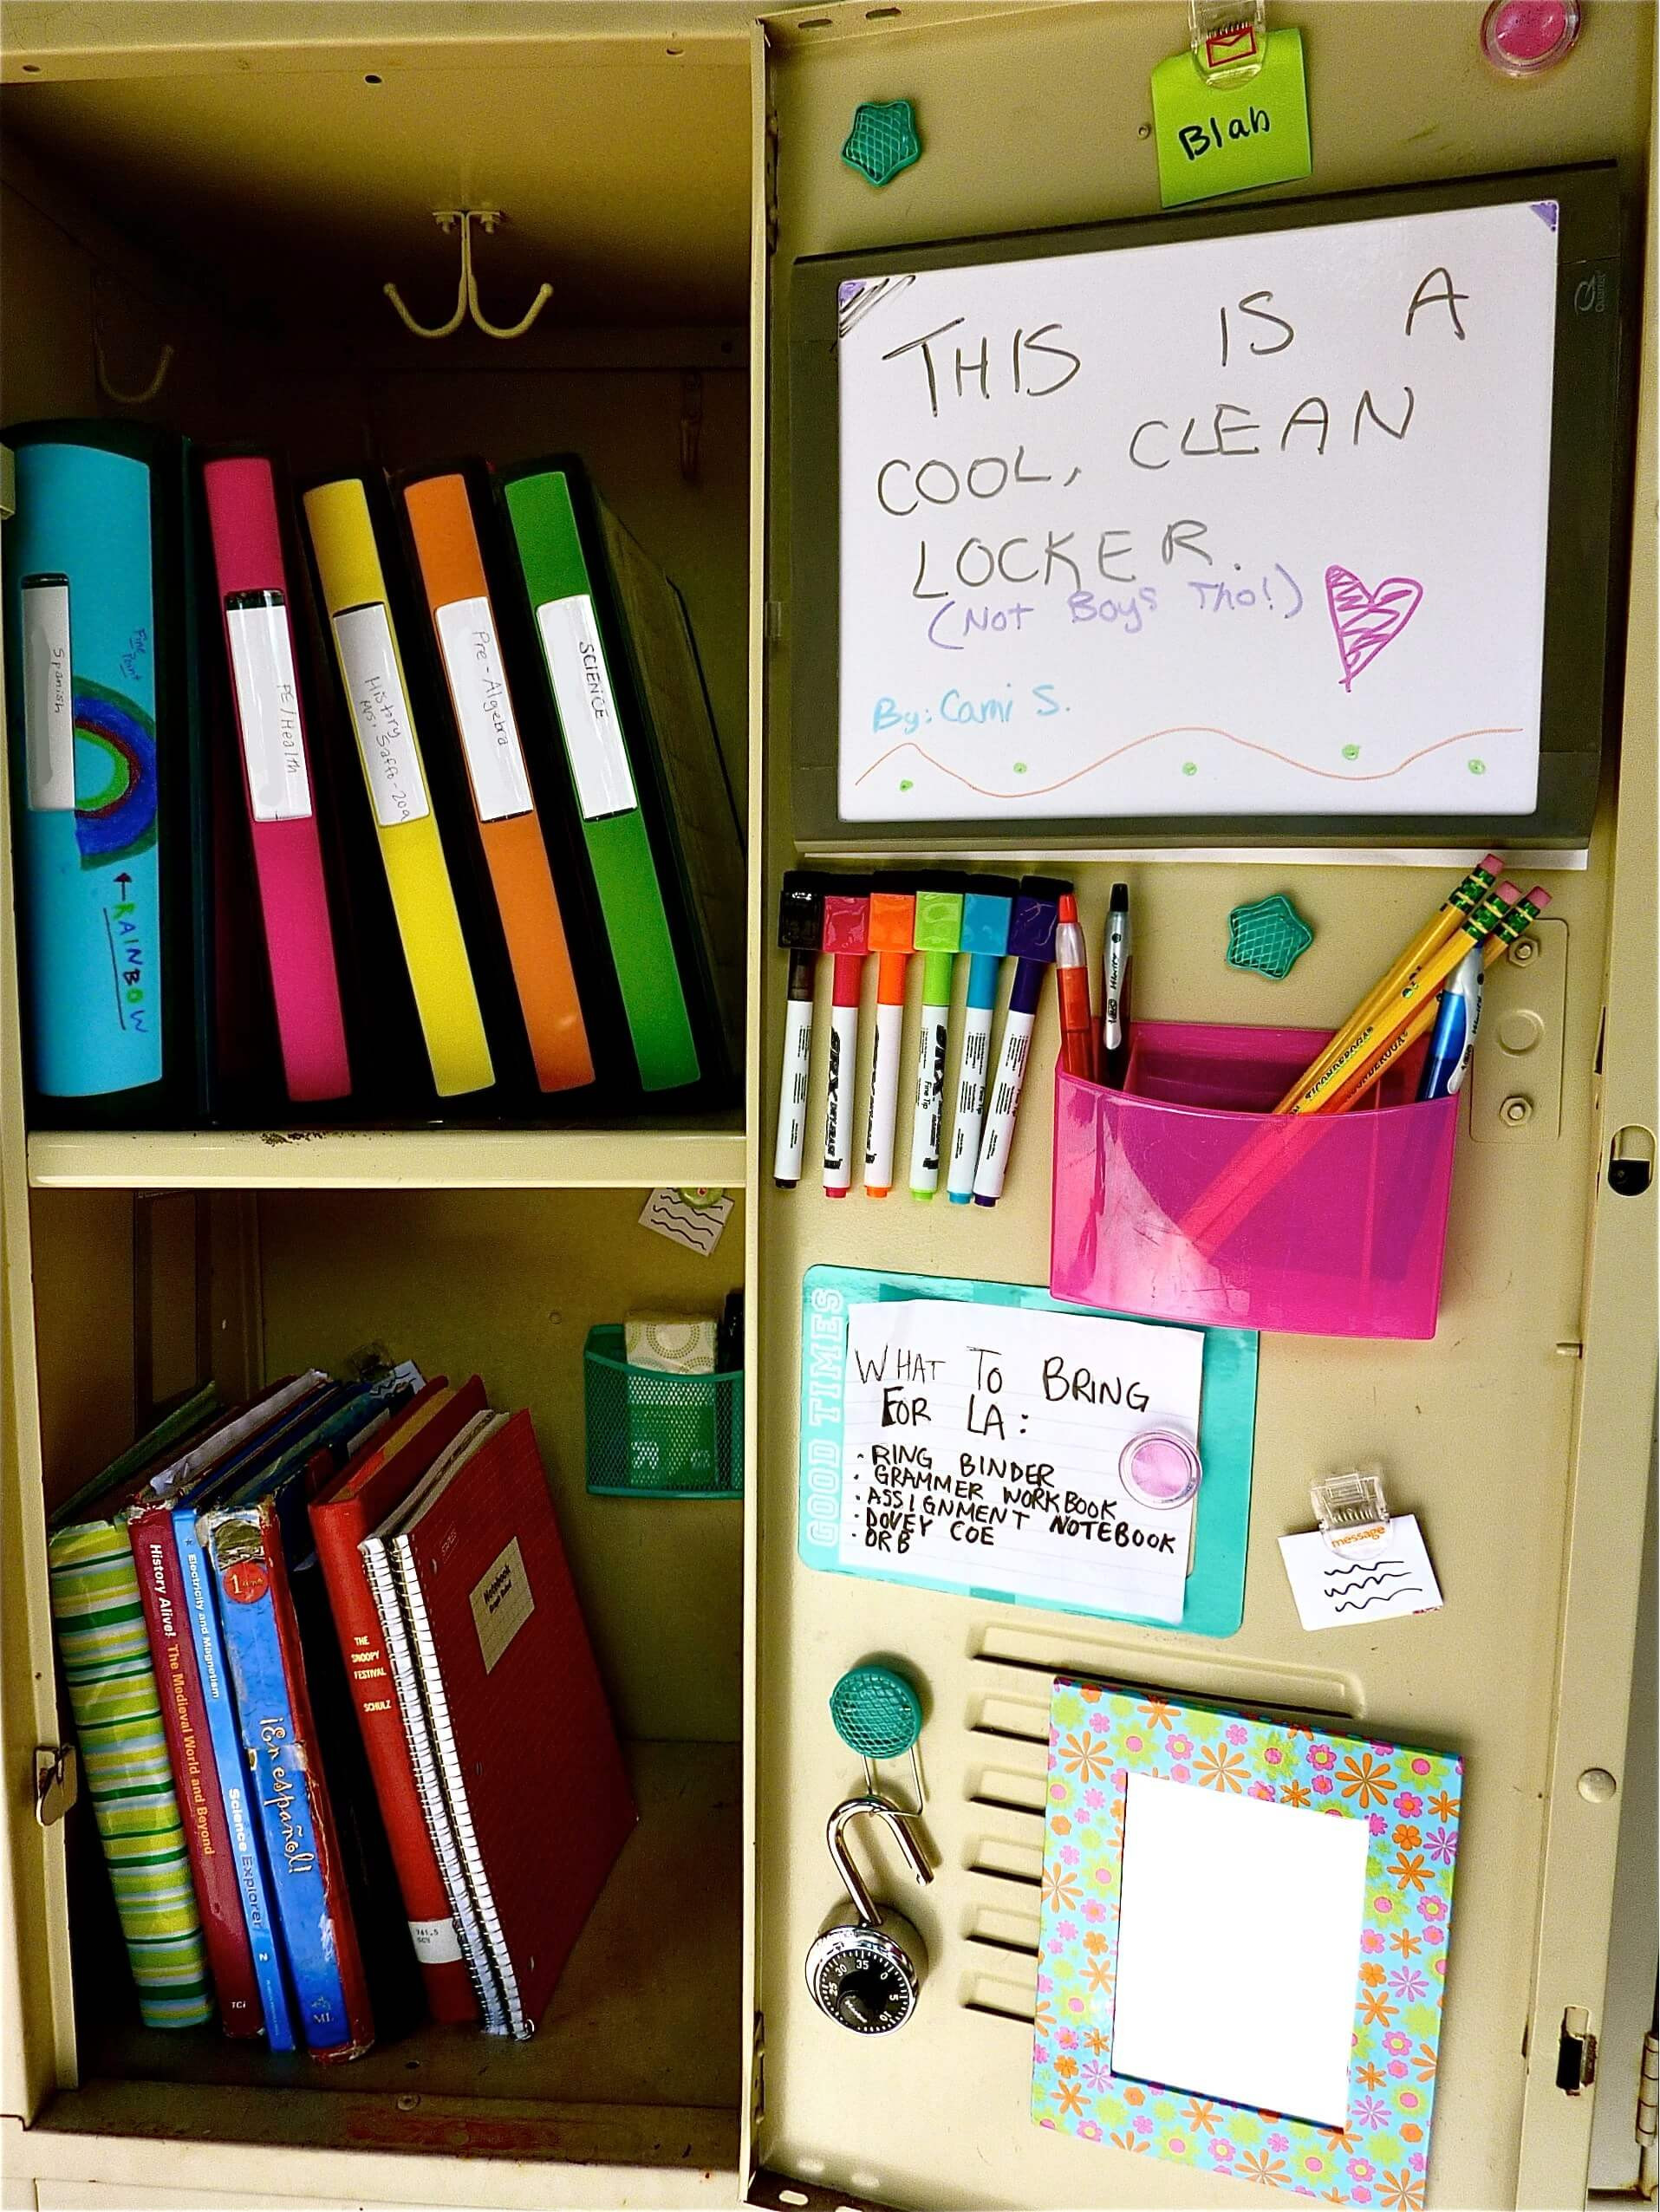 Best ideas about Locker Organizer DIY . Save or Pin 25 DIY Locker Decor Ideas for More Cooler Look Now.